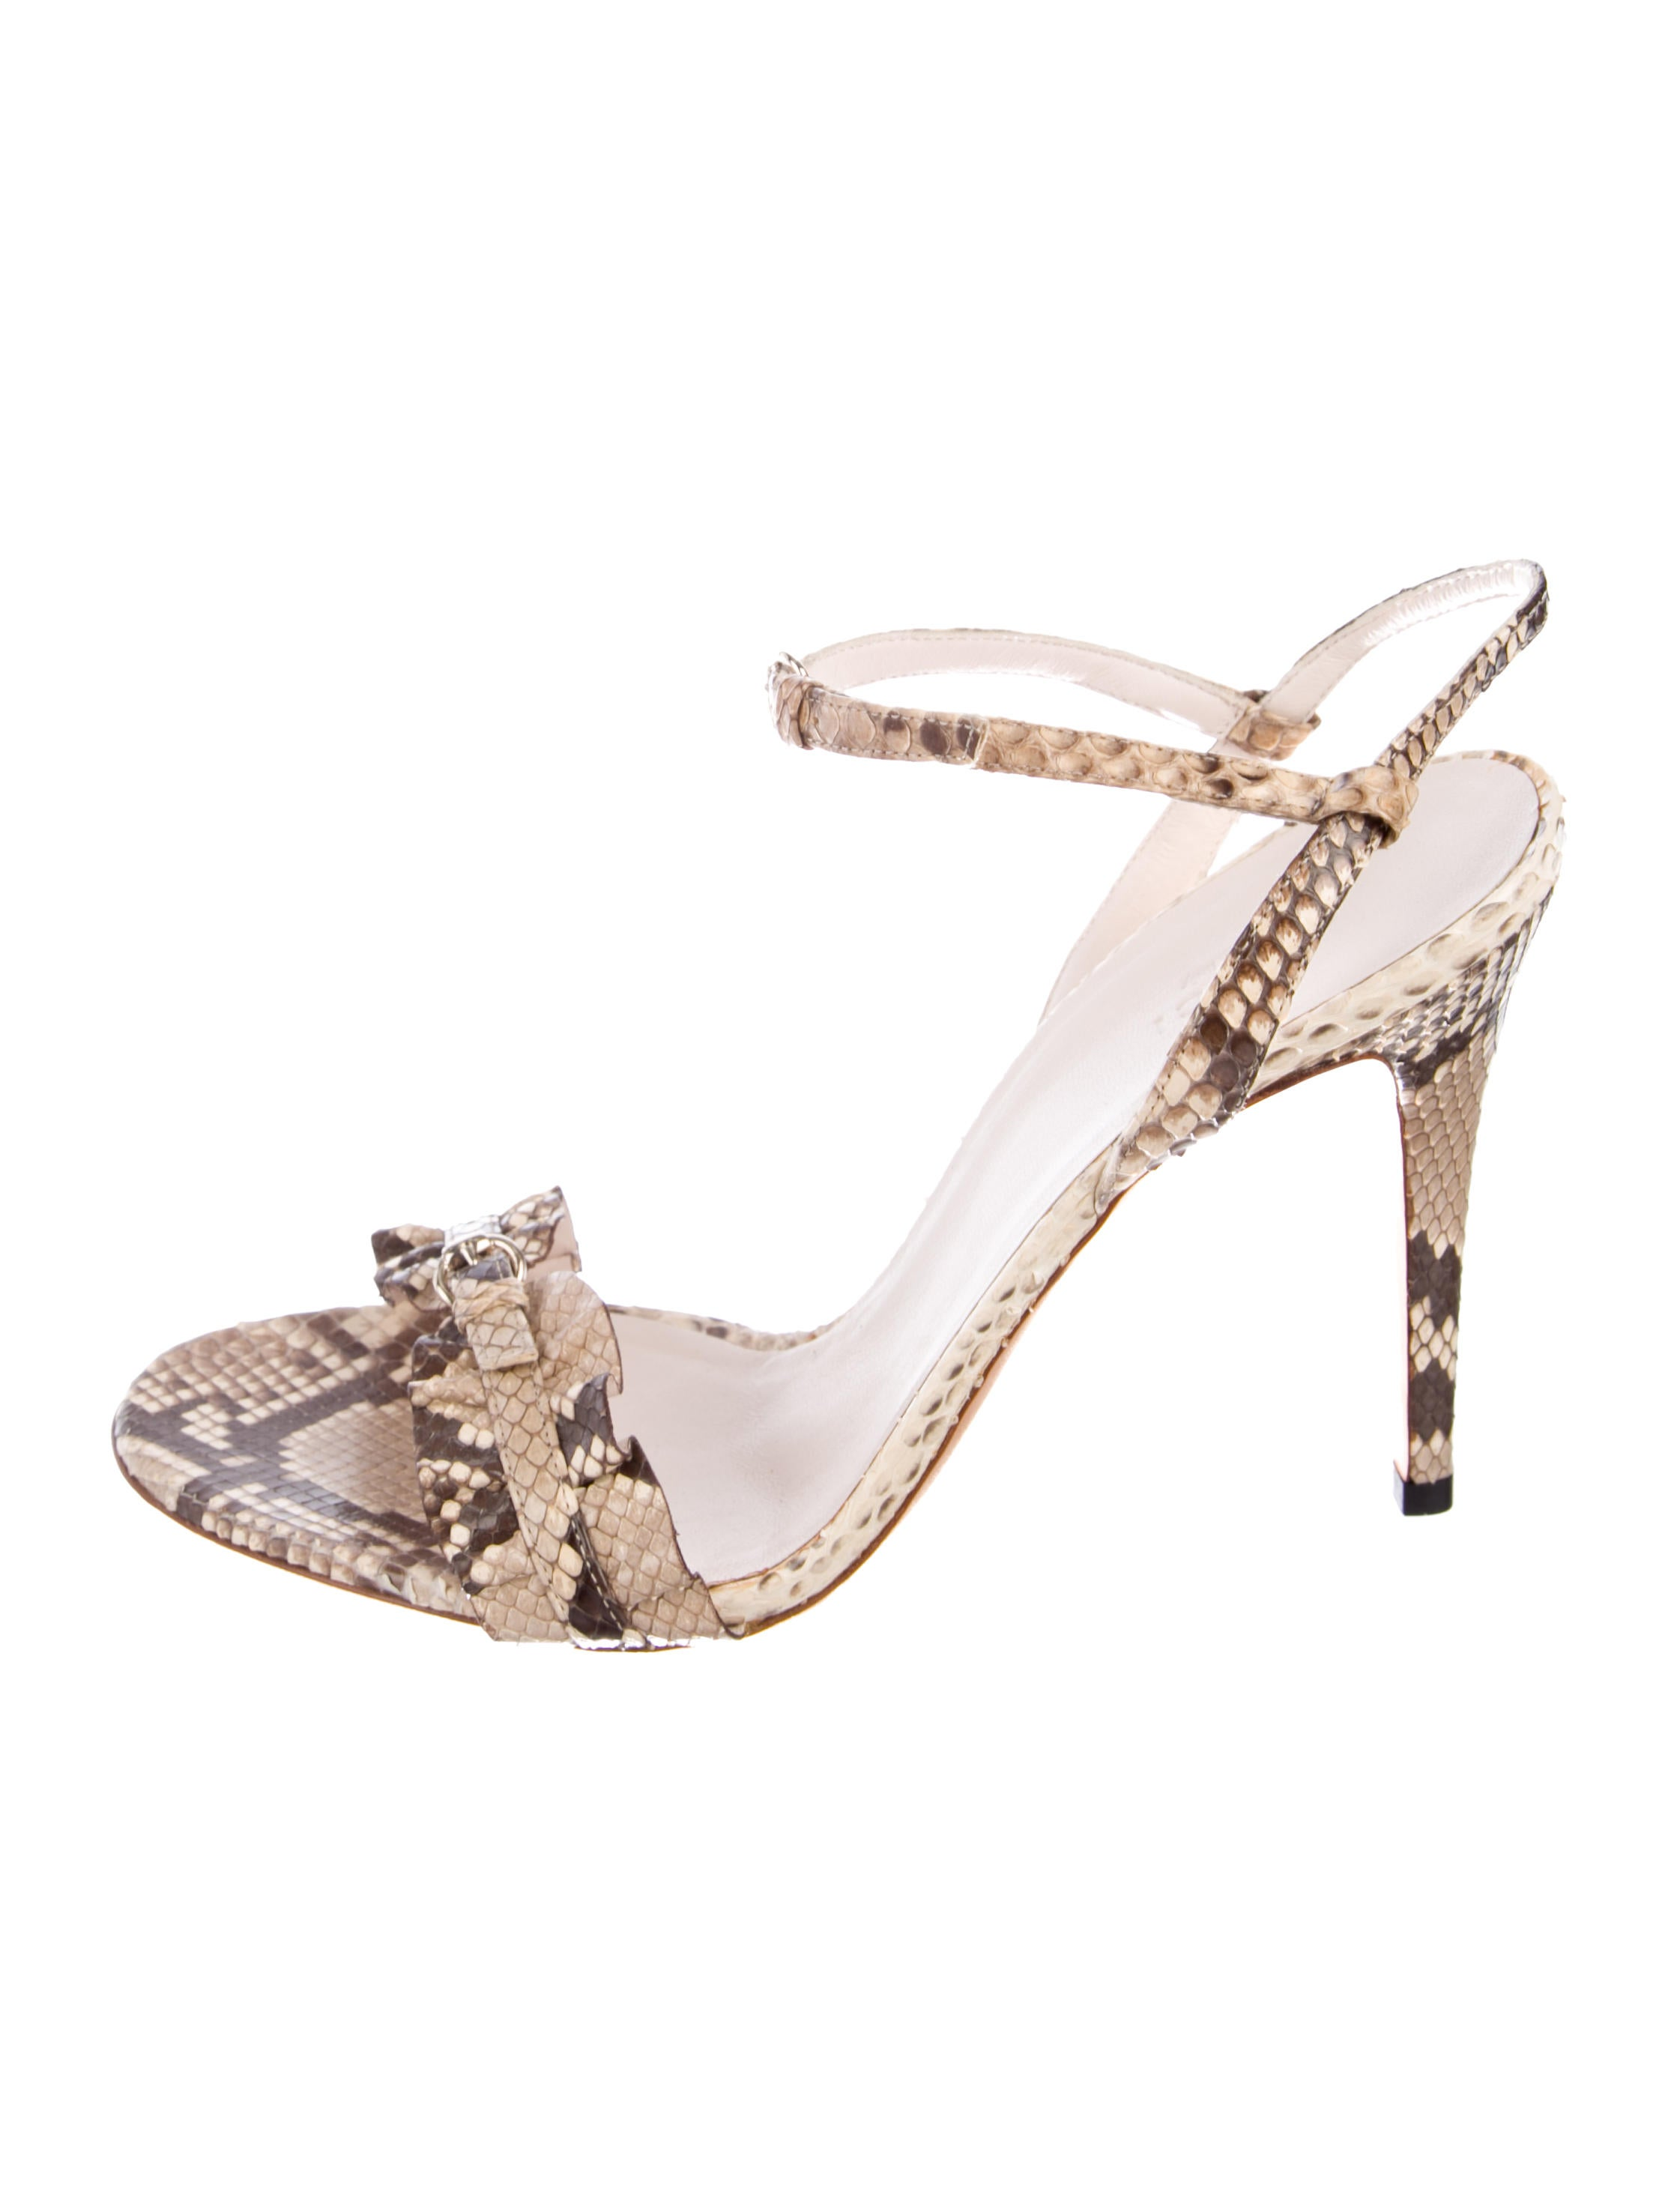 507c41e02a9 Gucci Snakeskin Ankle-Strap Sandals - Shoes - GUC222392